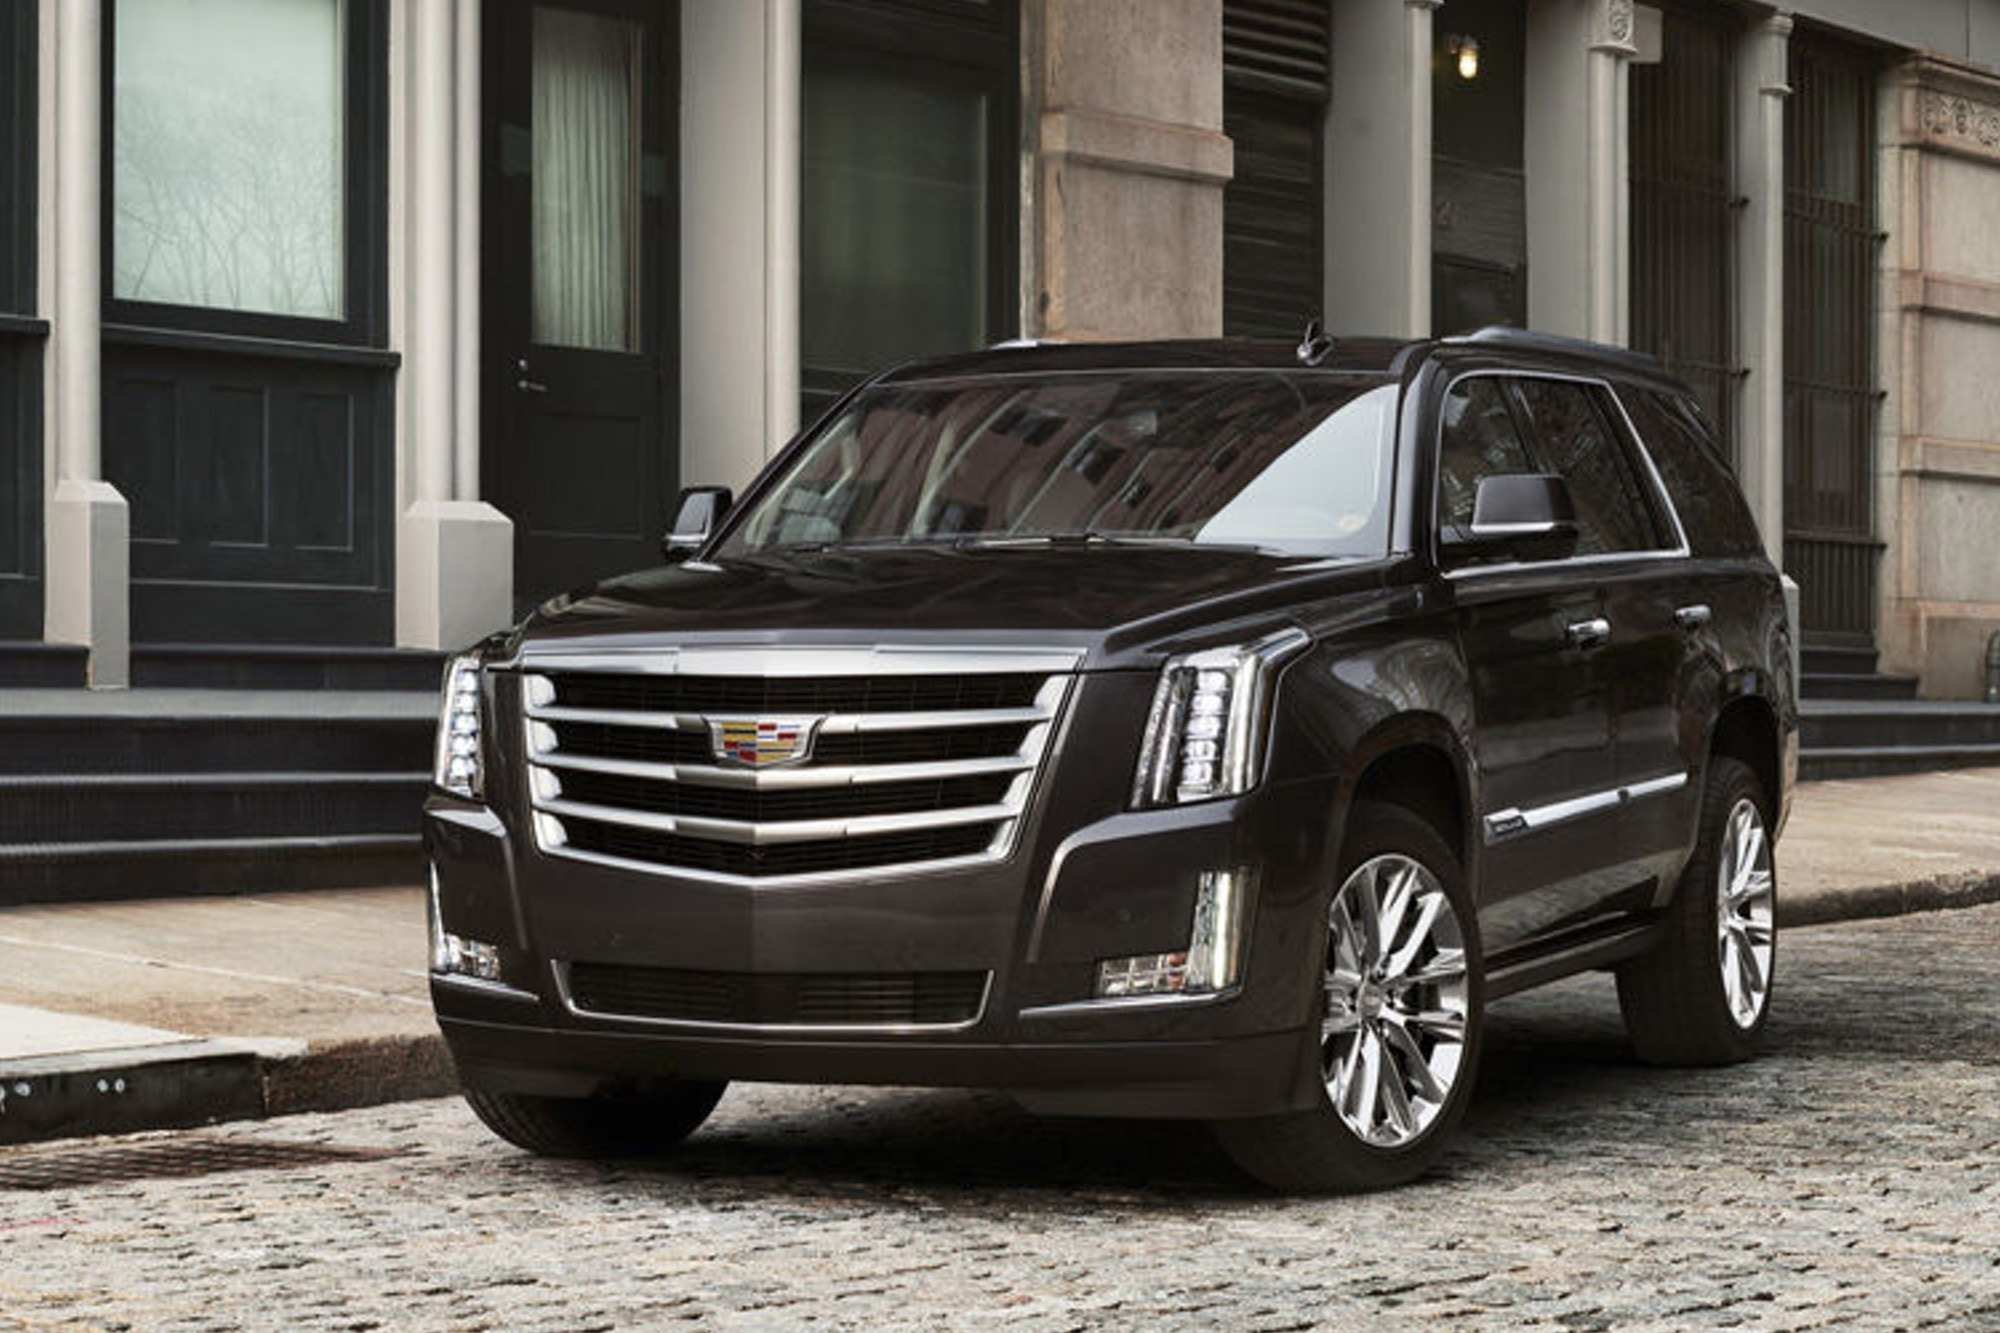 68 All New 2020 Cadillac Escalade Msrp Interior by 2020 Cadillac Escalade Msrp